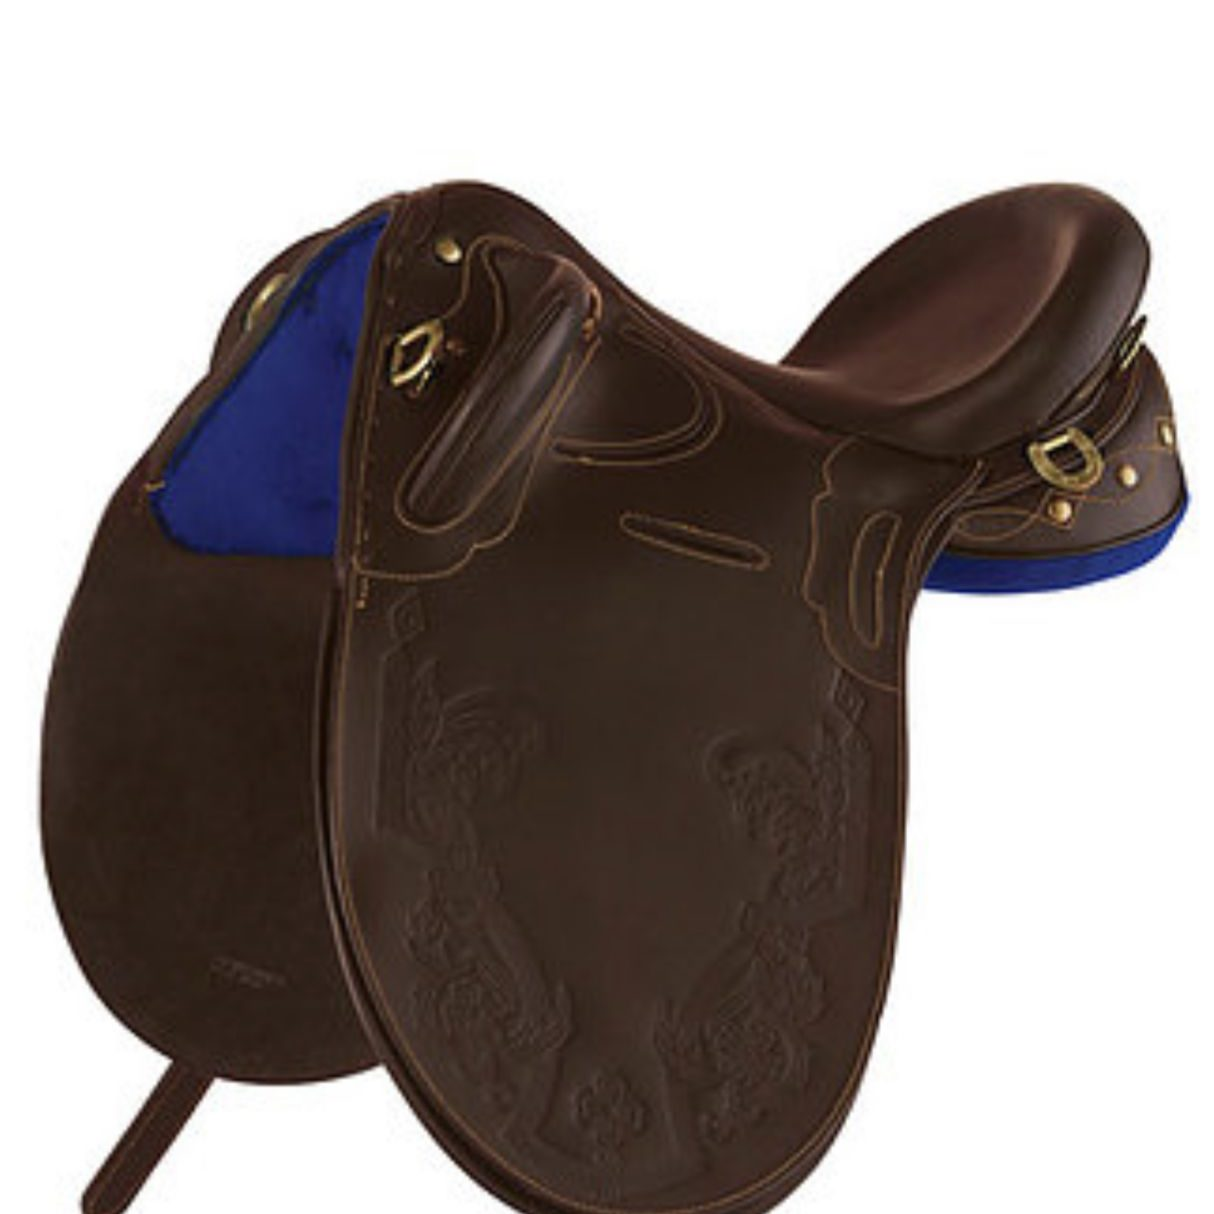 Saddlecraft Marshal Poley Stock-Saddle